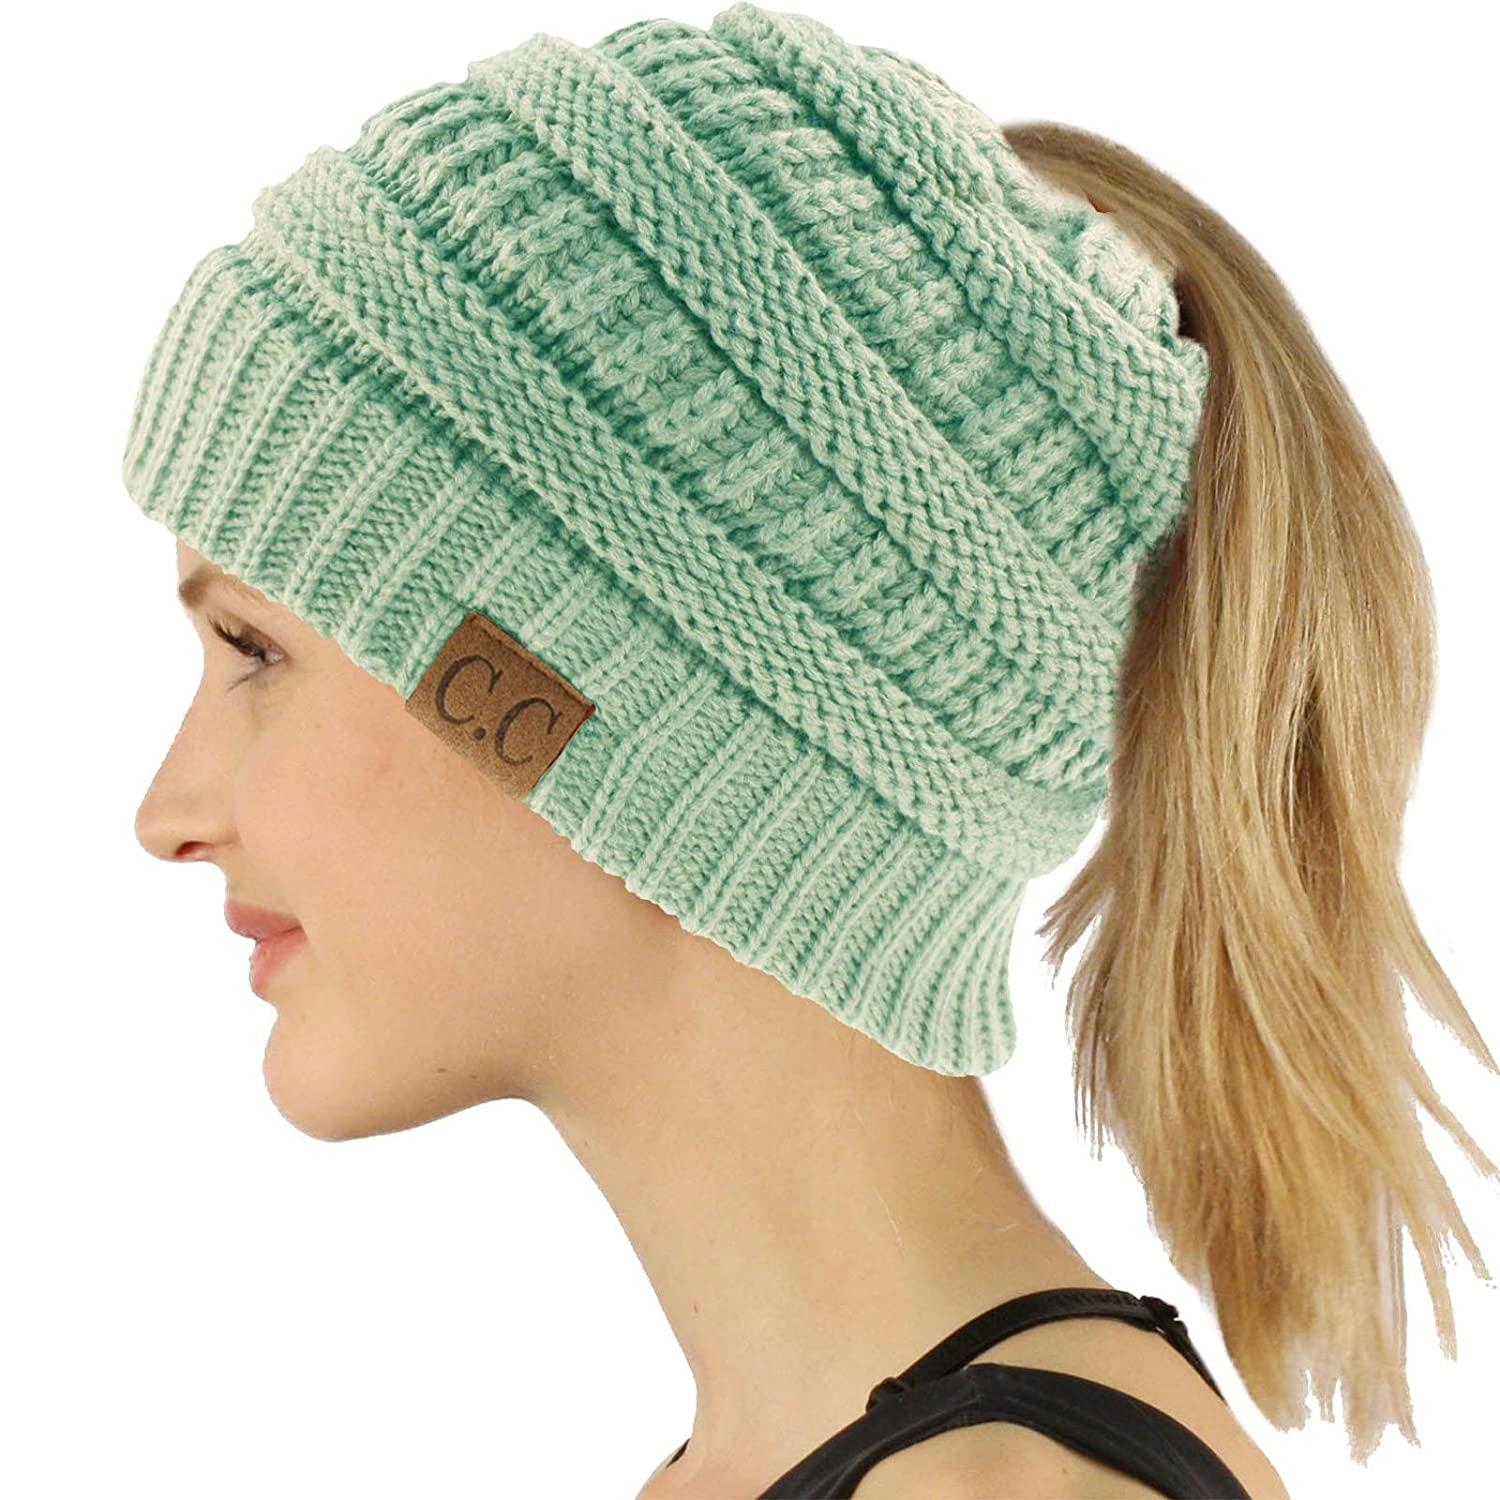 2c27aeaed4297 Ponytail Messy Bun BeanieTail Soft Winter Knit Stretchy Beanie Hat Cap  Black Gray Mix at Amazon Women s Clothing store